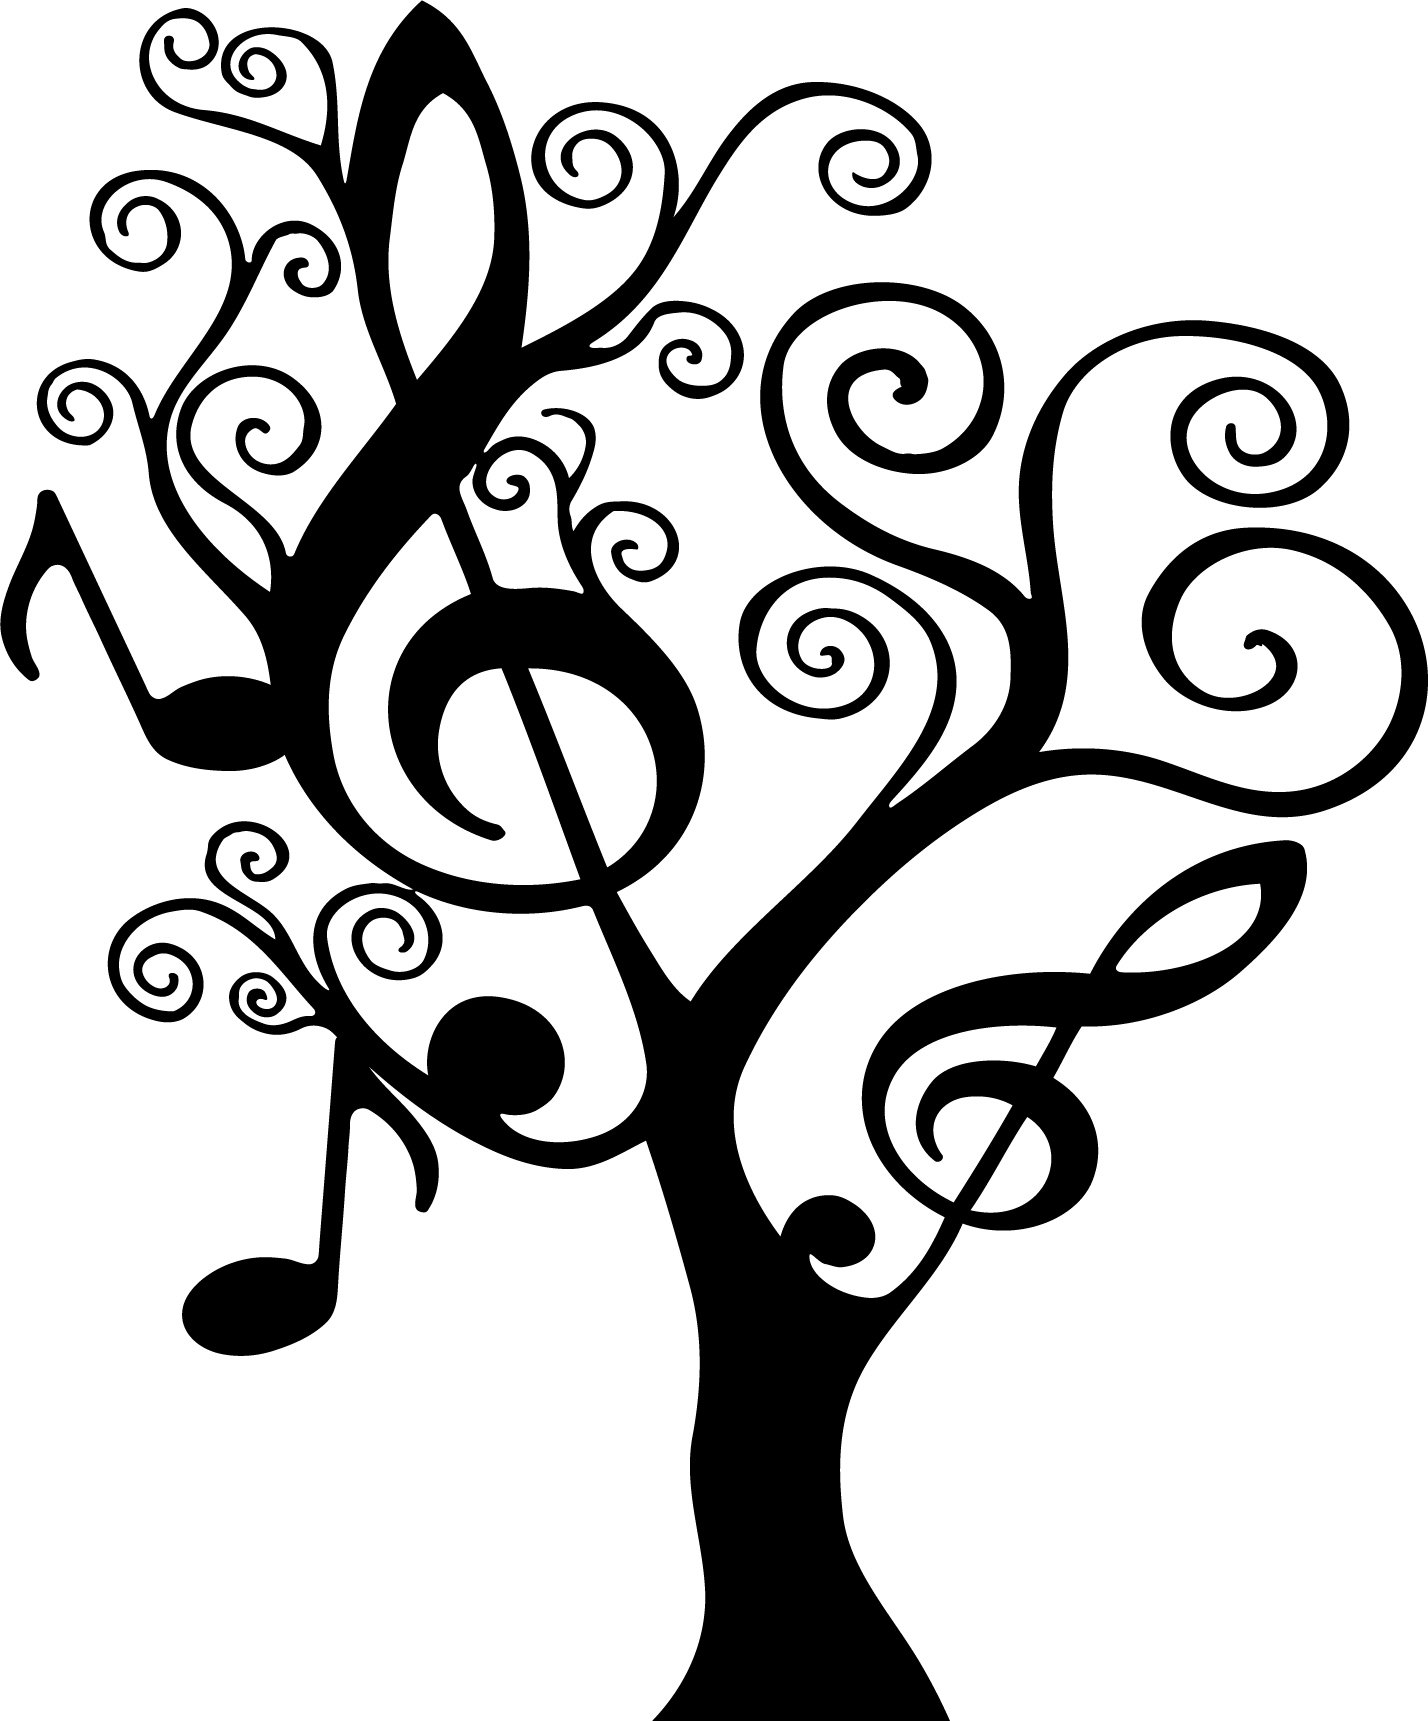 music note symbol pictures choice image